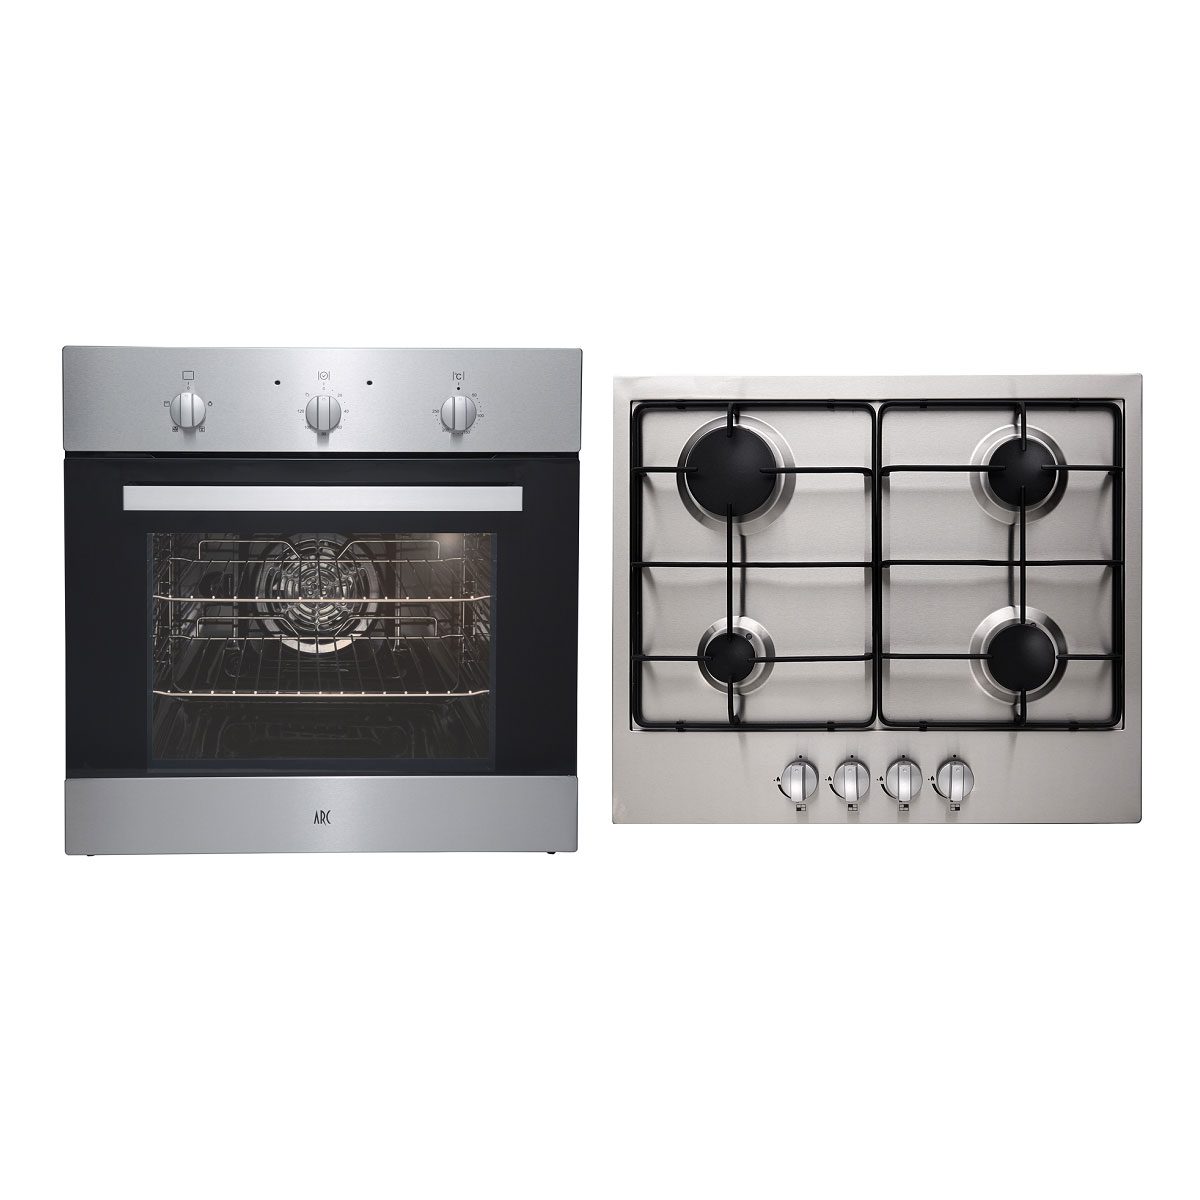 Arc ACPG Electric Oven & Natural Gas Cooktop Pack